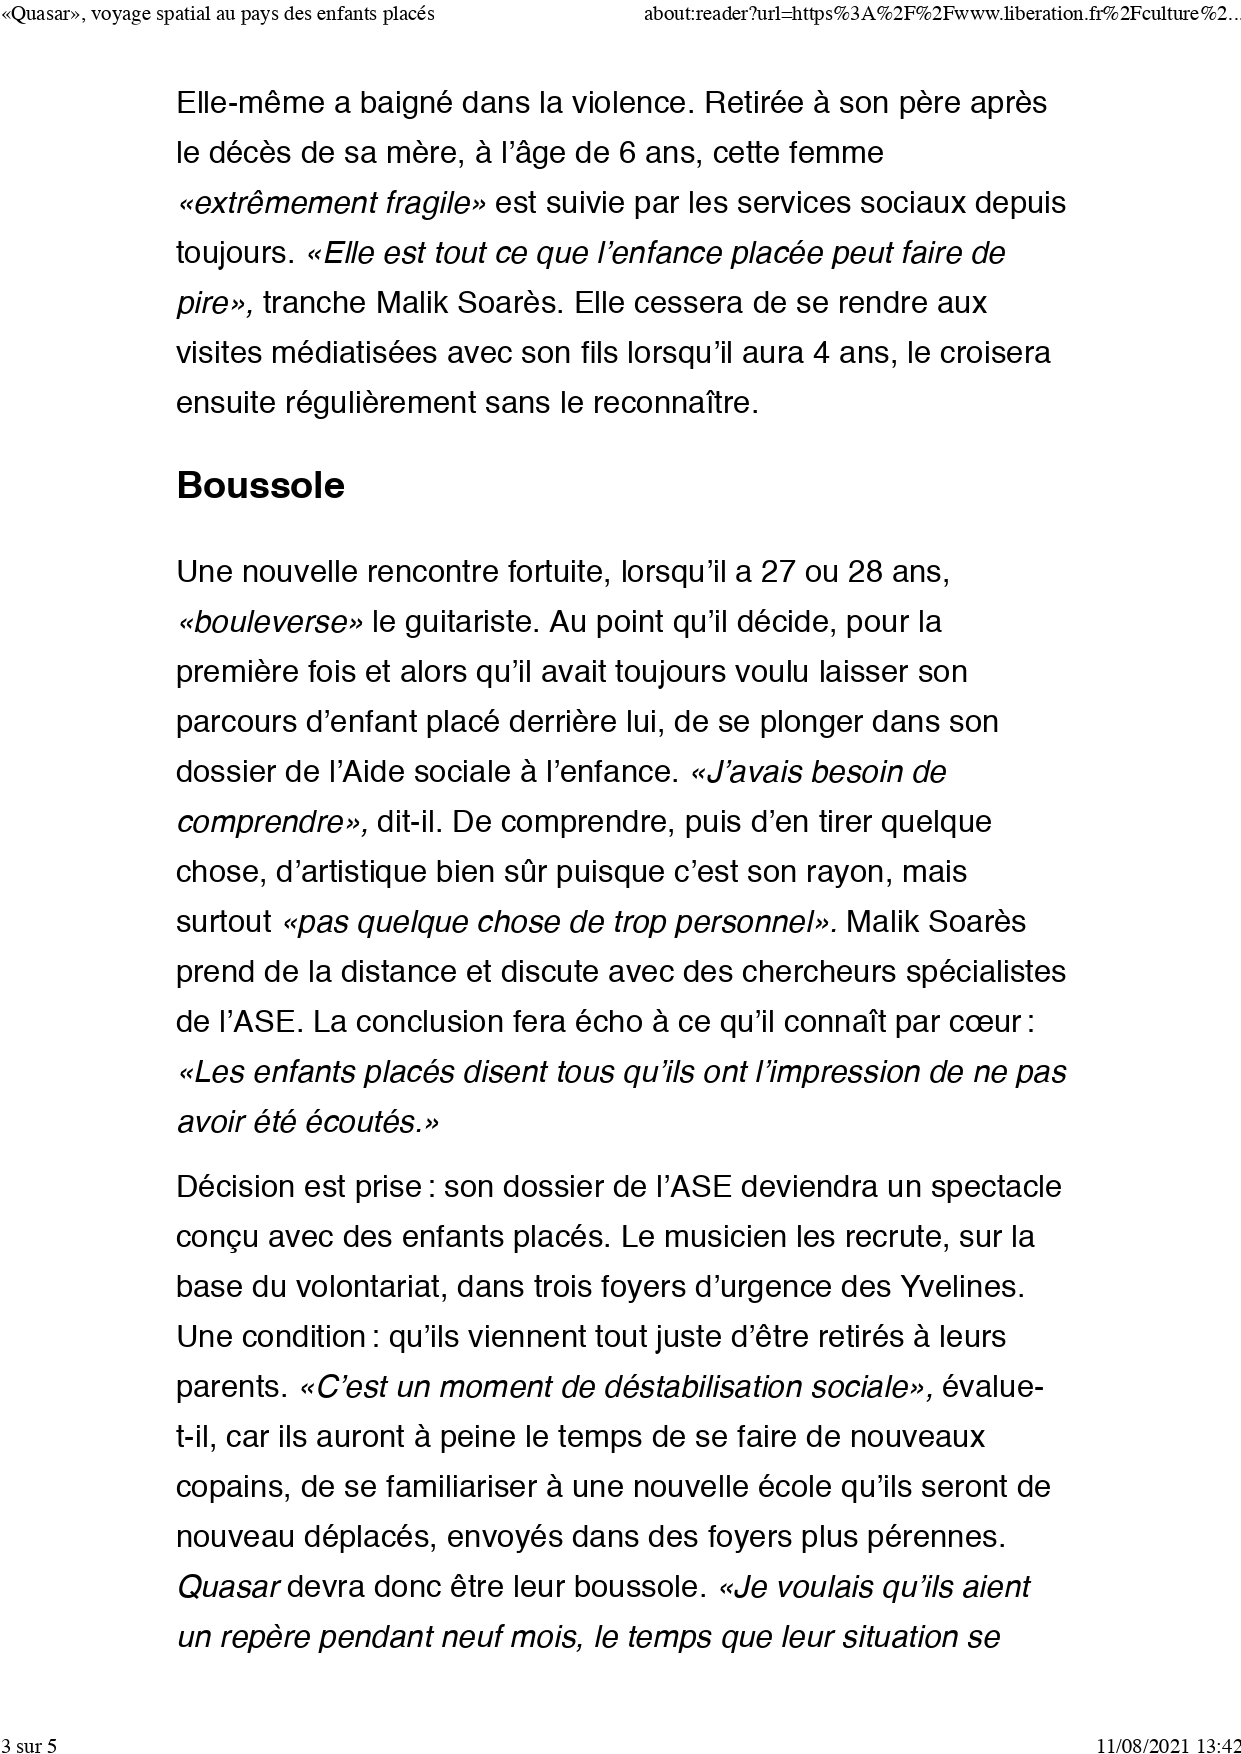 Quasar dossier_2021_page-0009